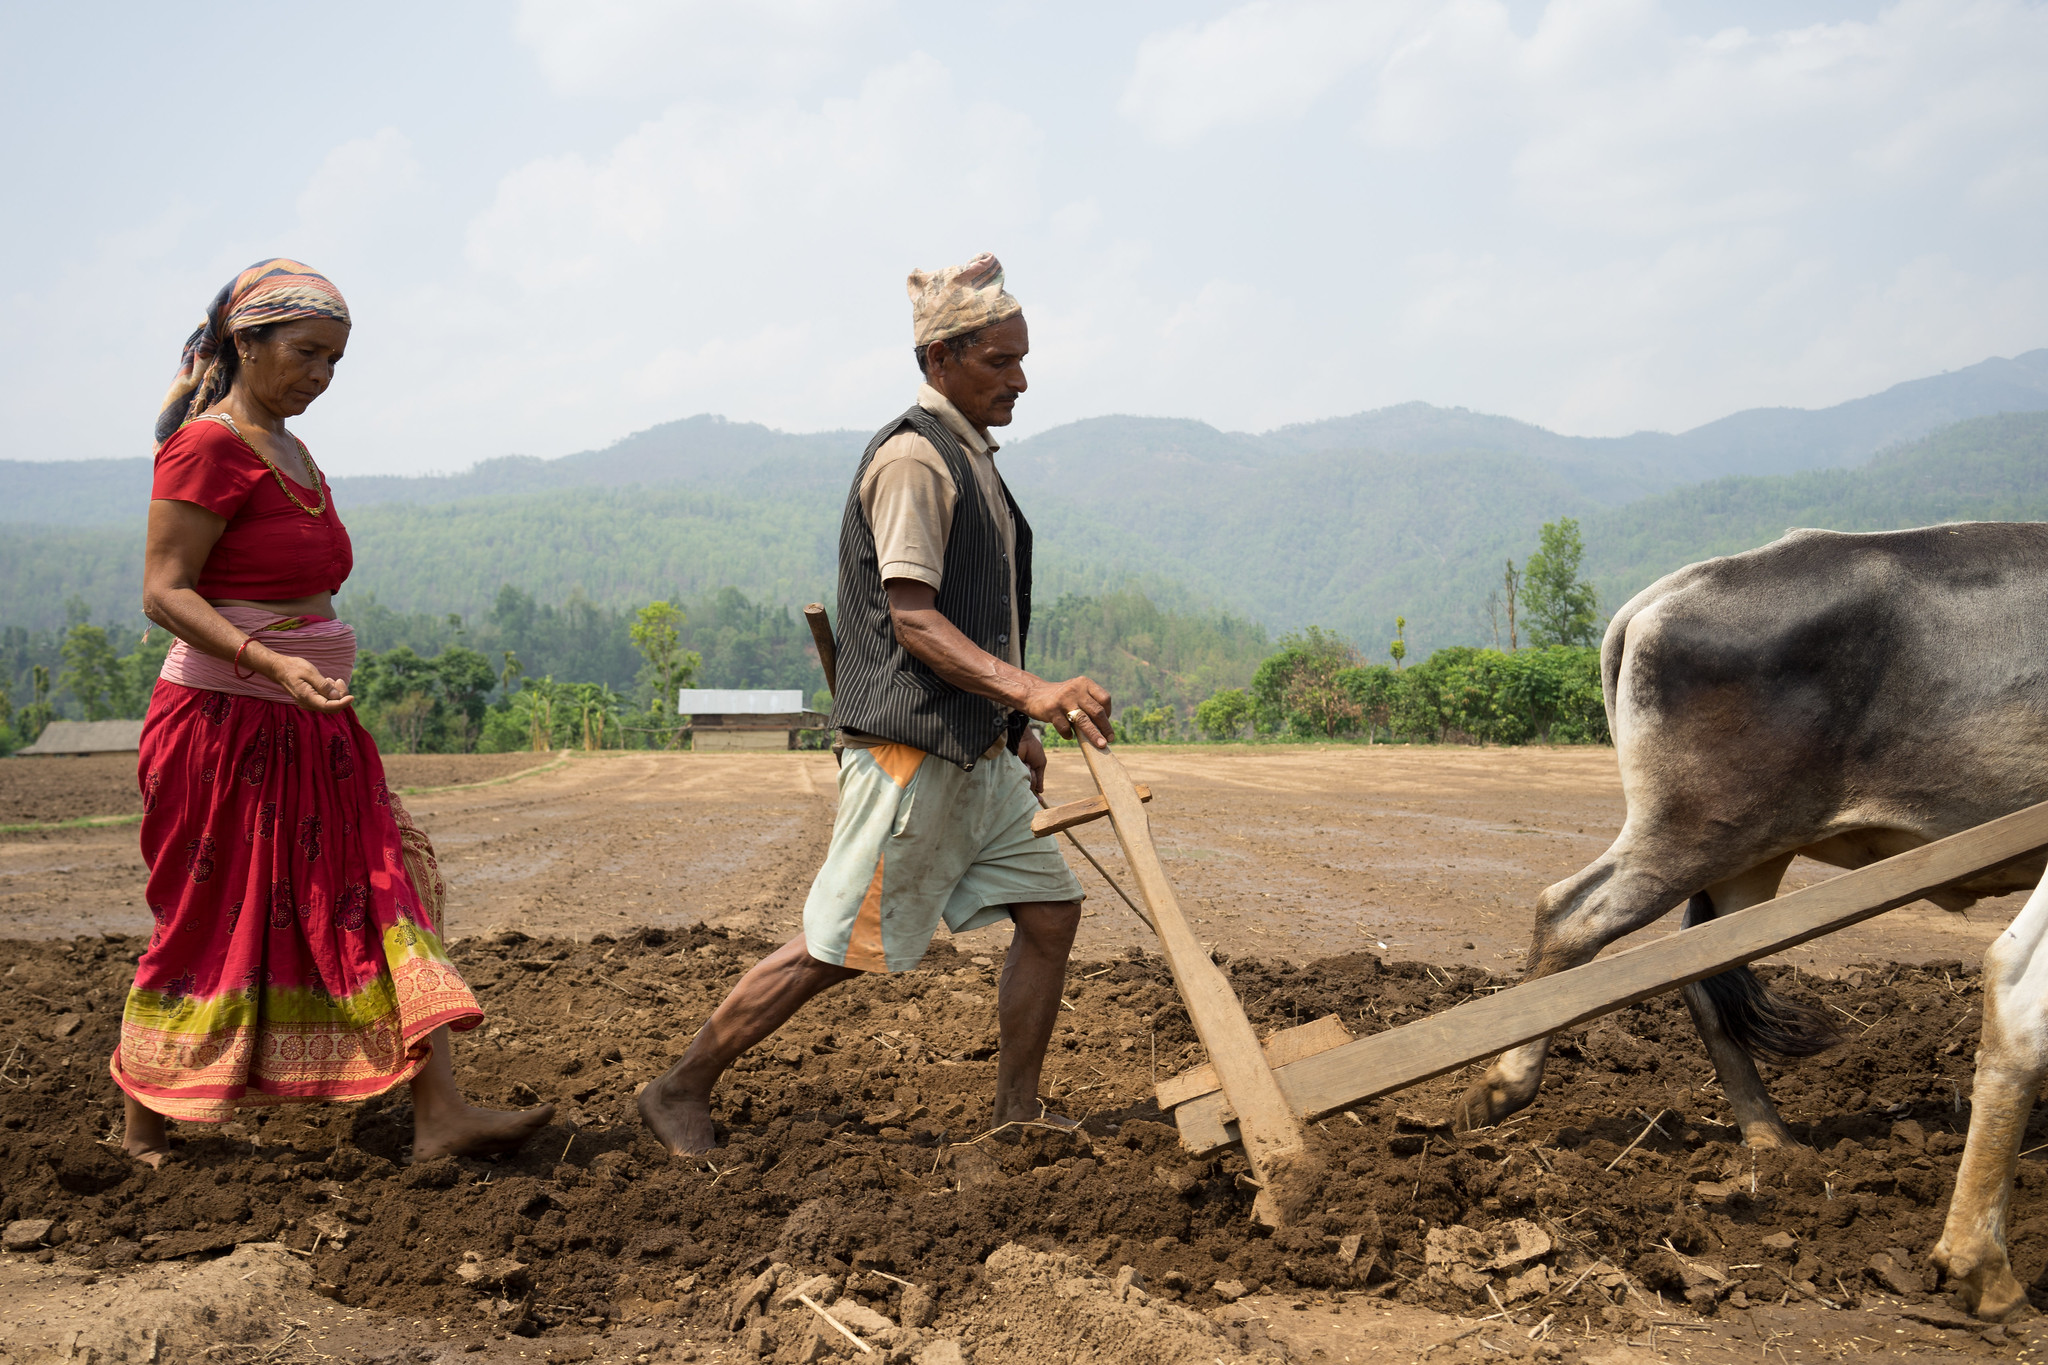 Farmer Bikram Daugi (right) ploughs with his oxen as Dhansa Bhandari walks behind sowing maize seed in Ramghat, Surkhet, Nepal. (Photo: P. Lowe/CIMMYT)